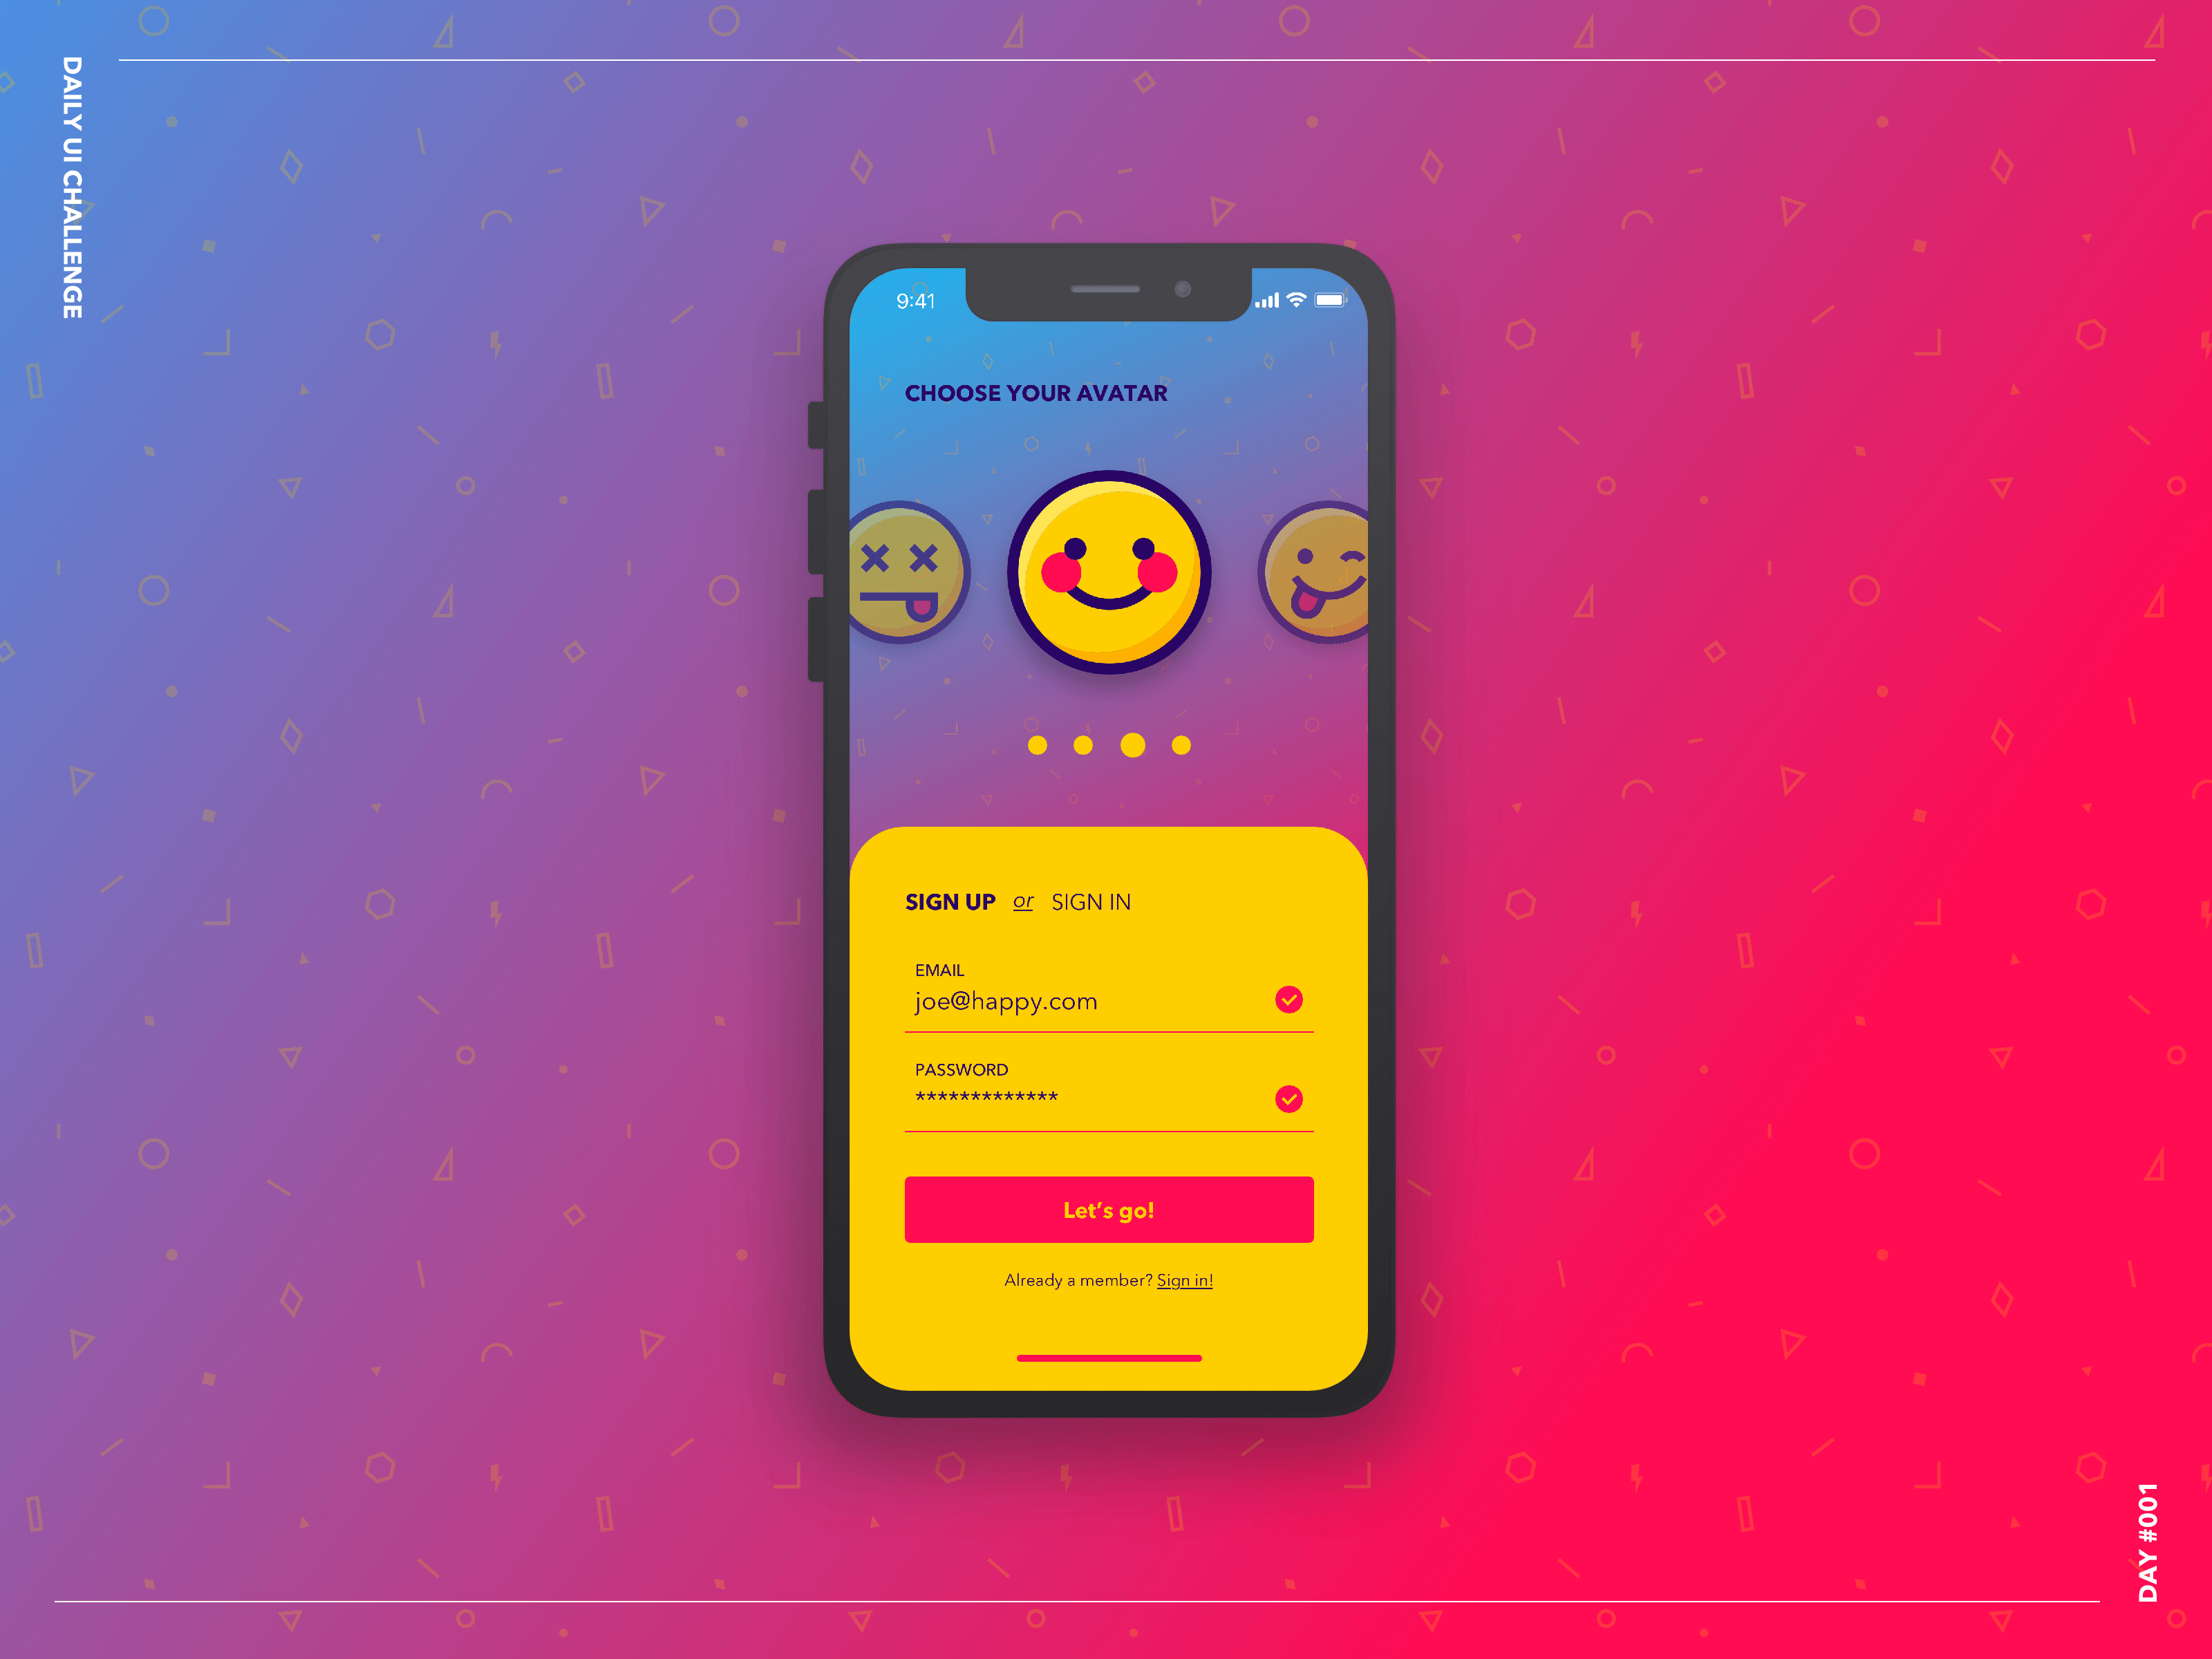 001-DUIC-Sign-Up-Dribbble